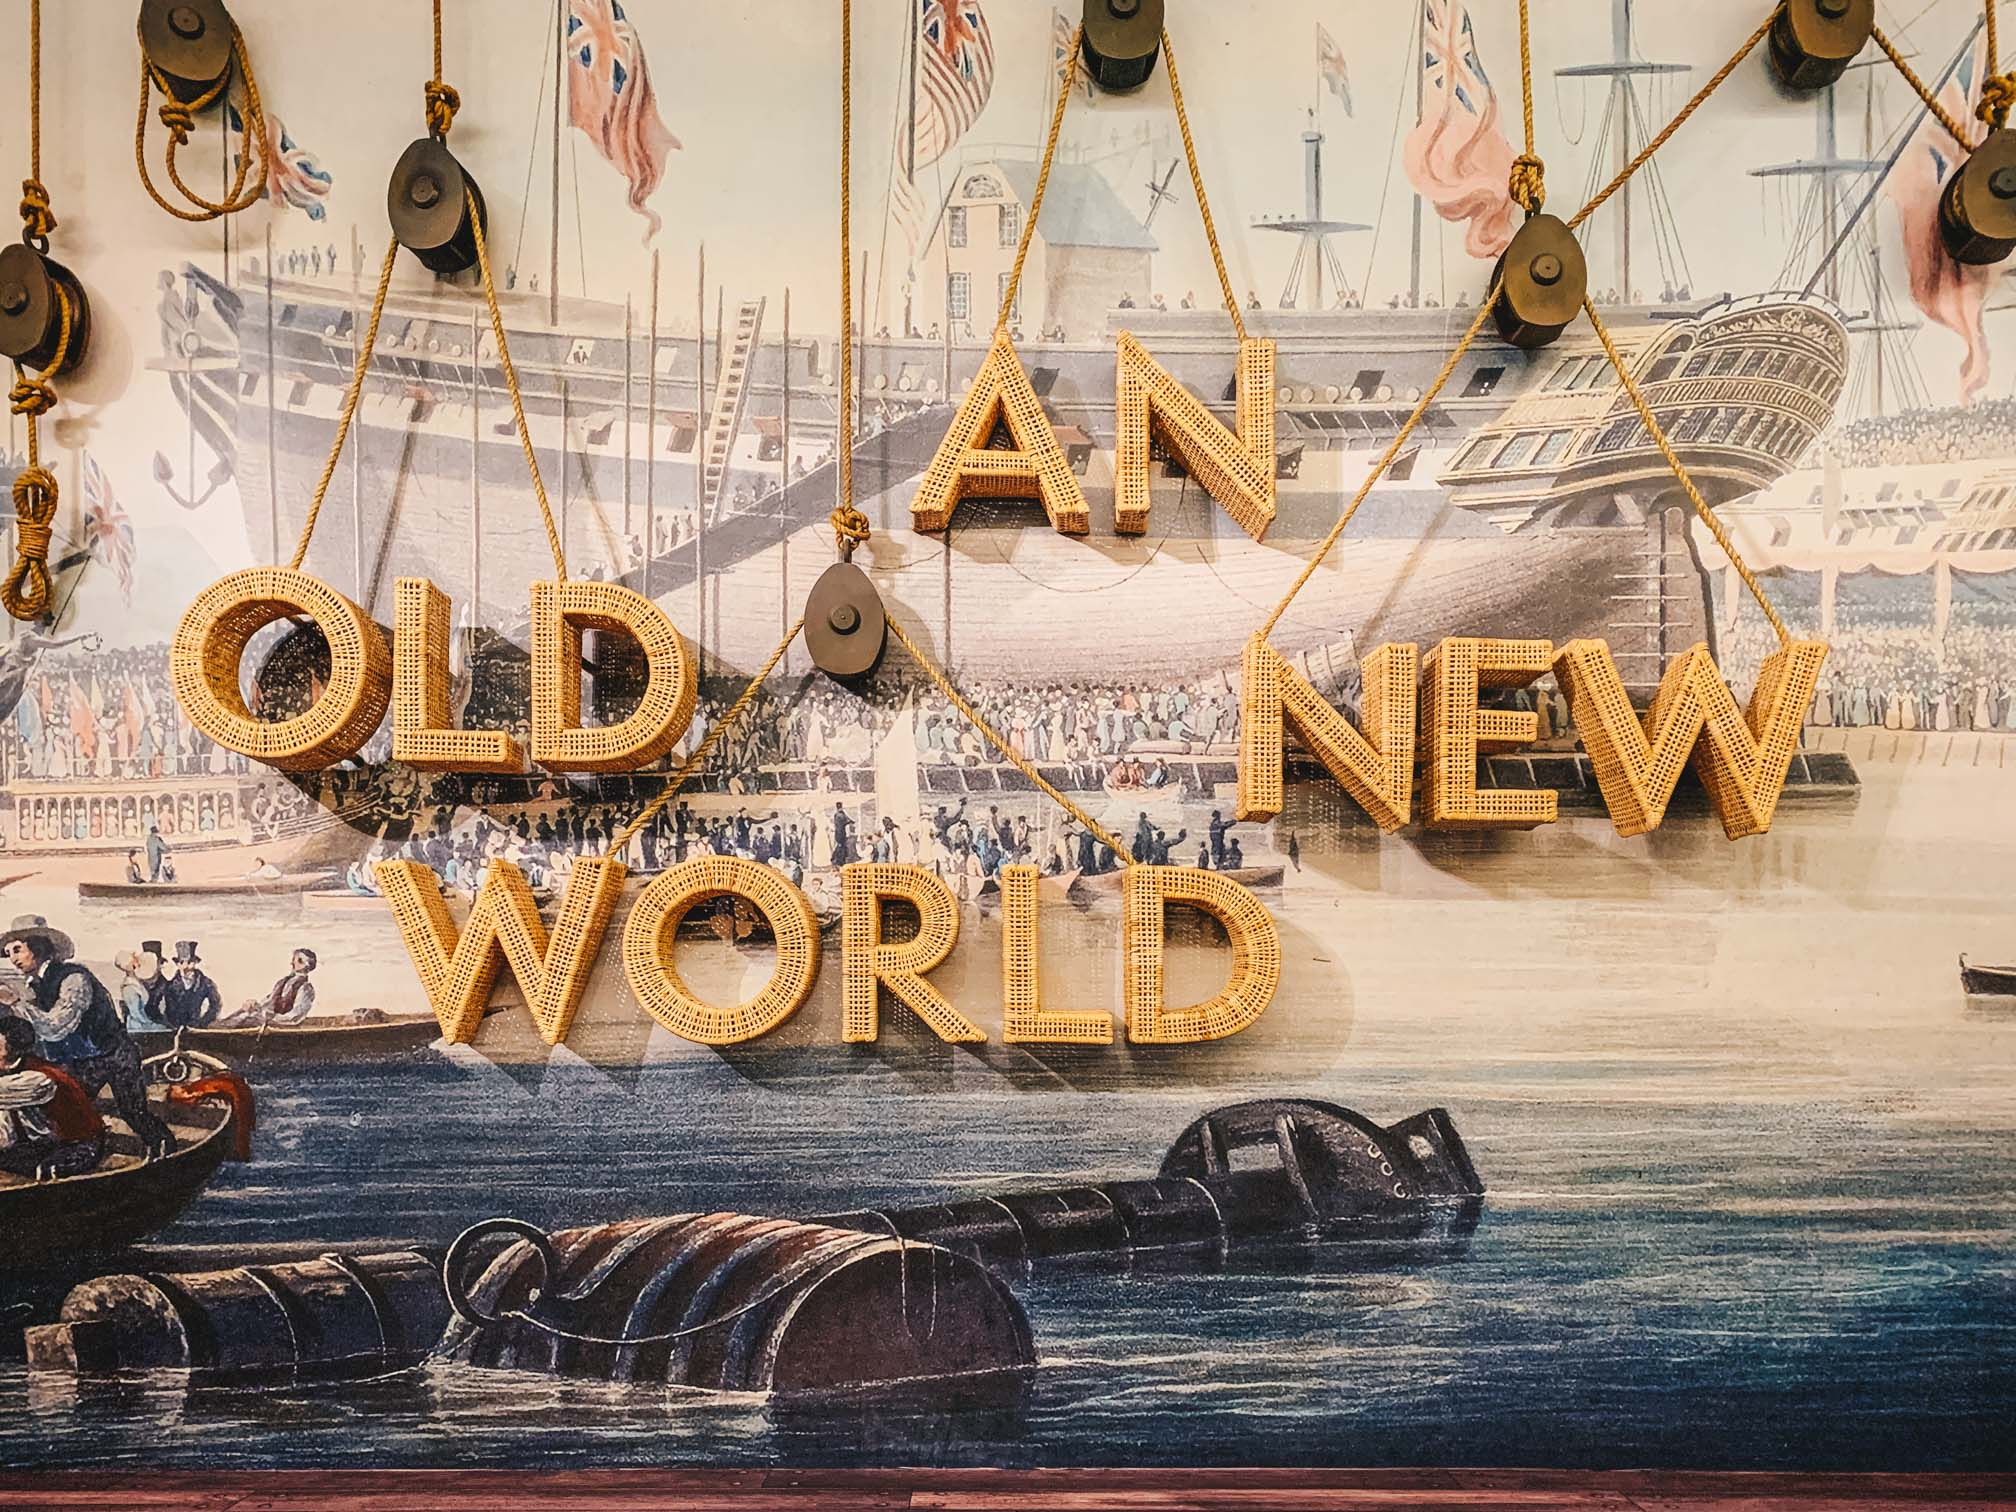 an-old-new-world-exhibition-national-musueum-of-singapore-darrenbloggie